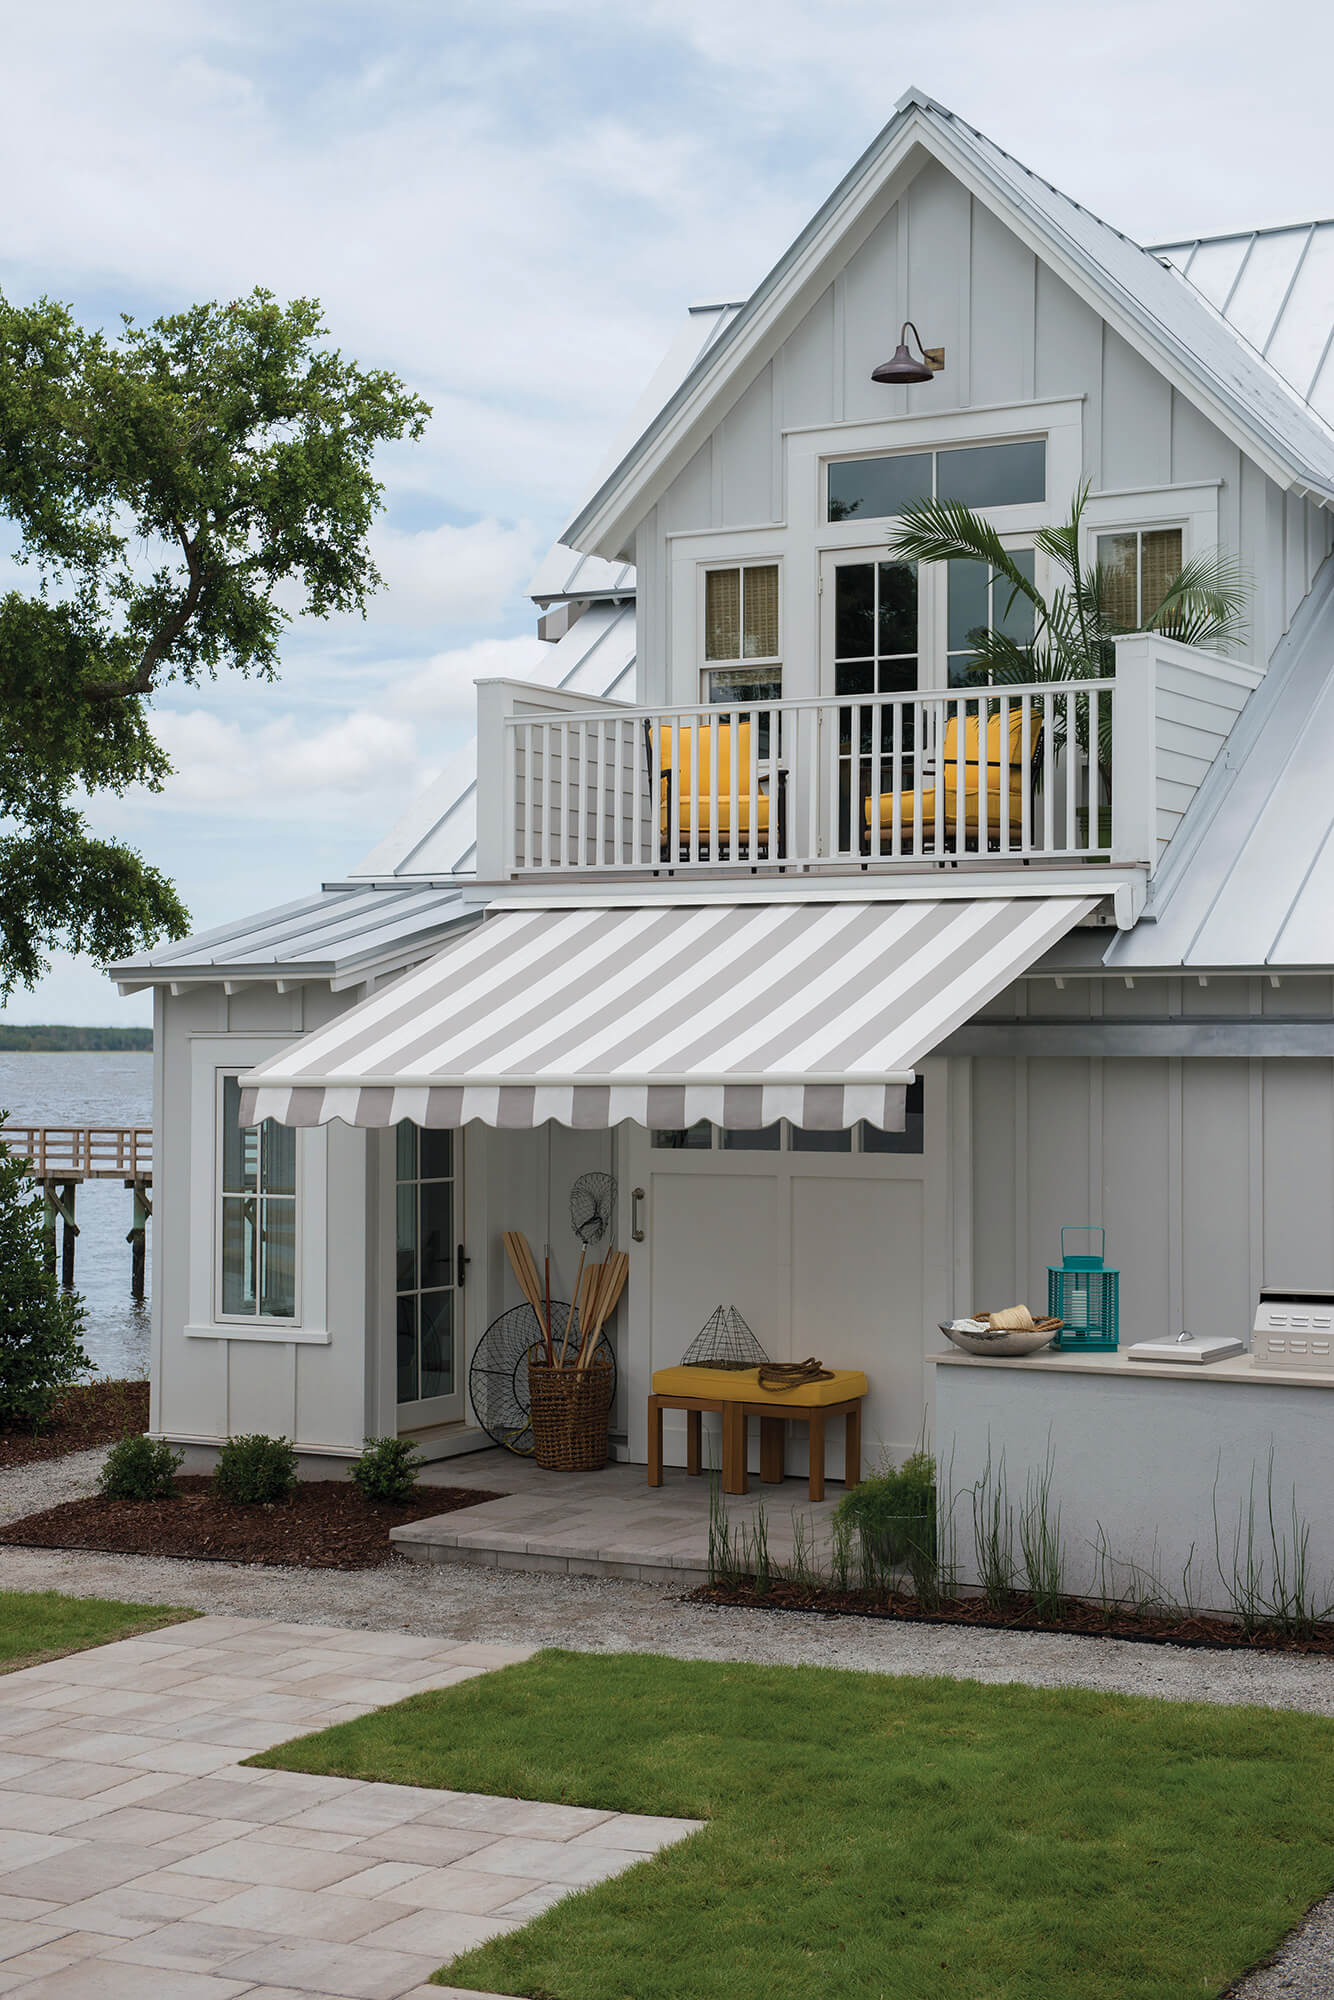 how to connect awning to house